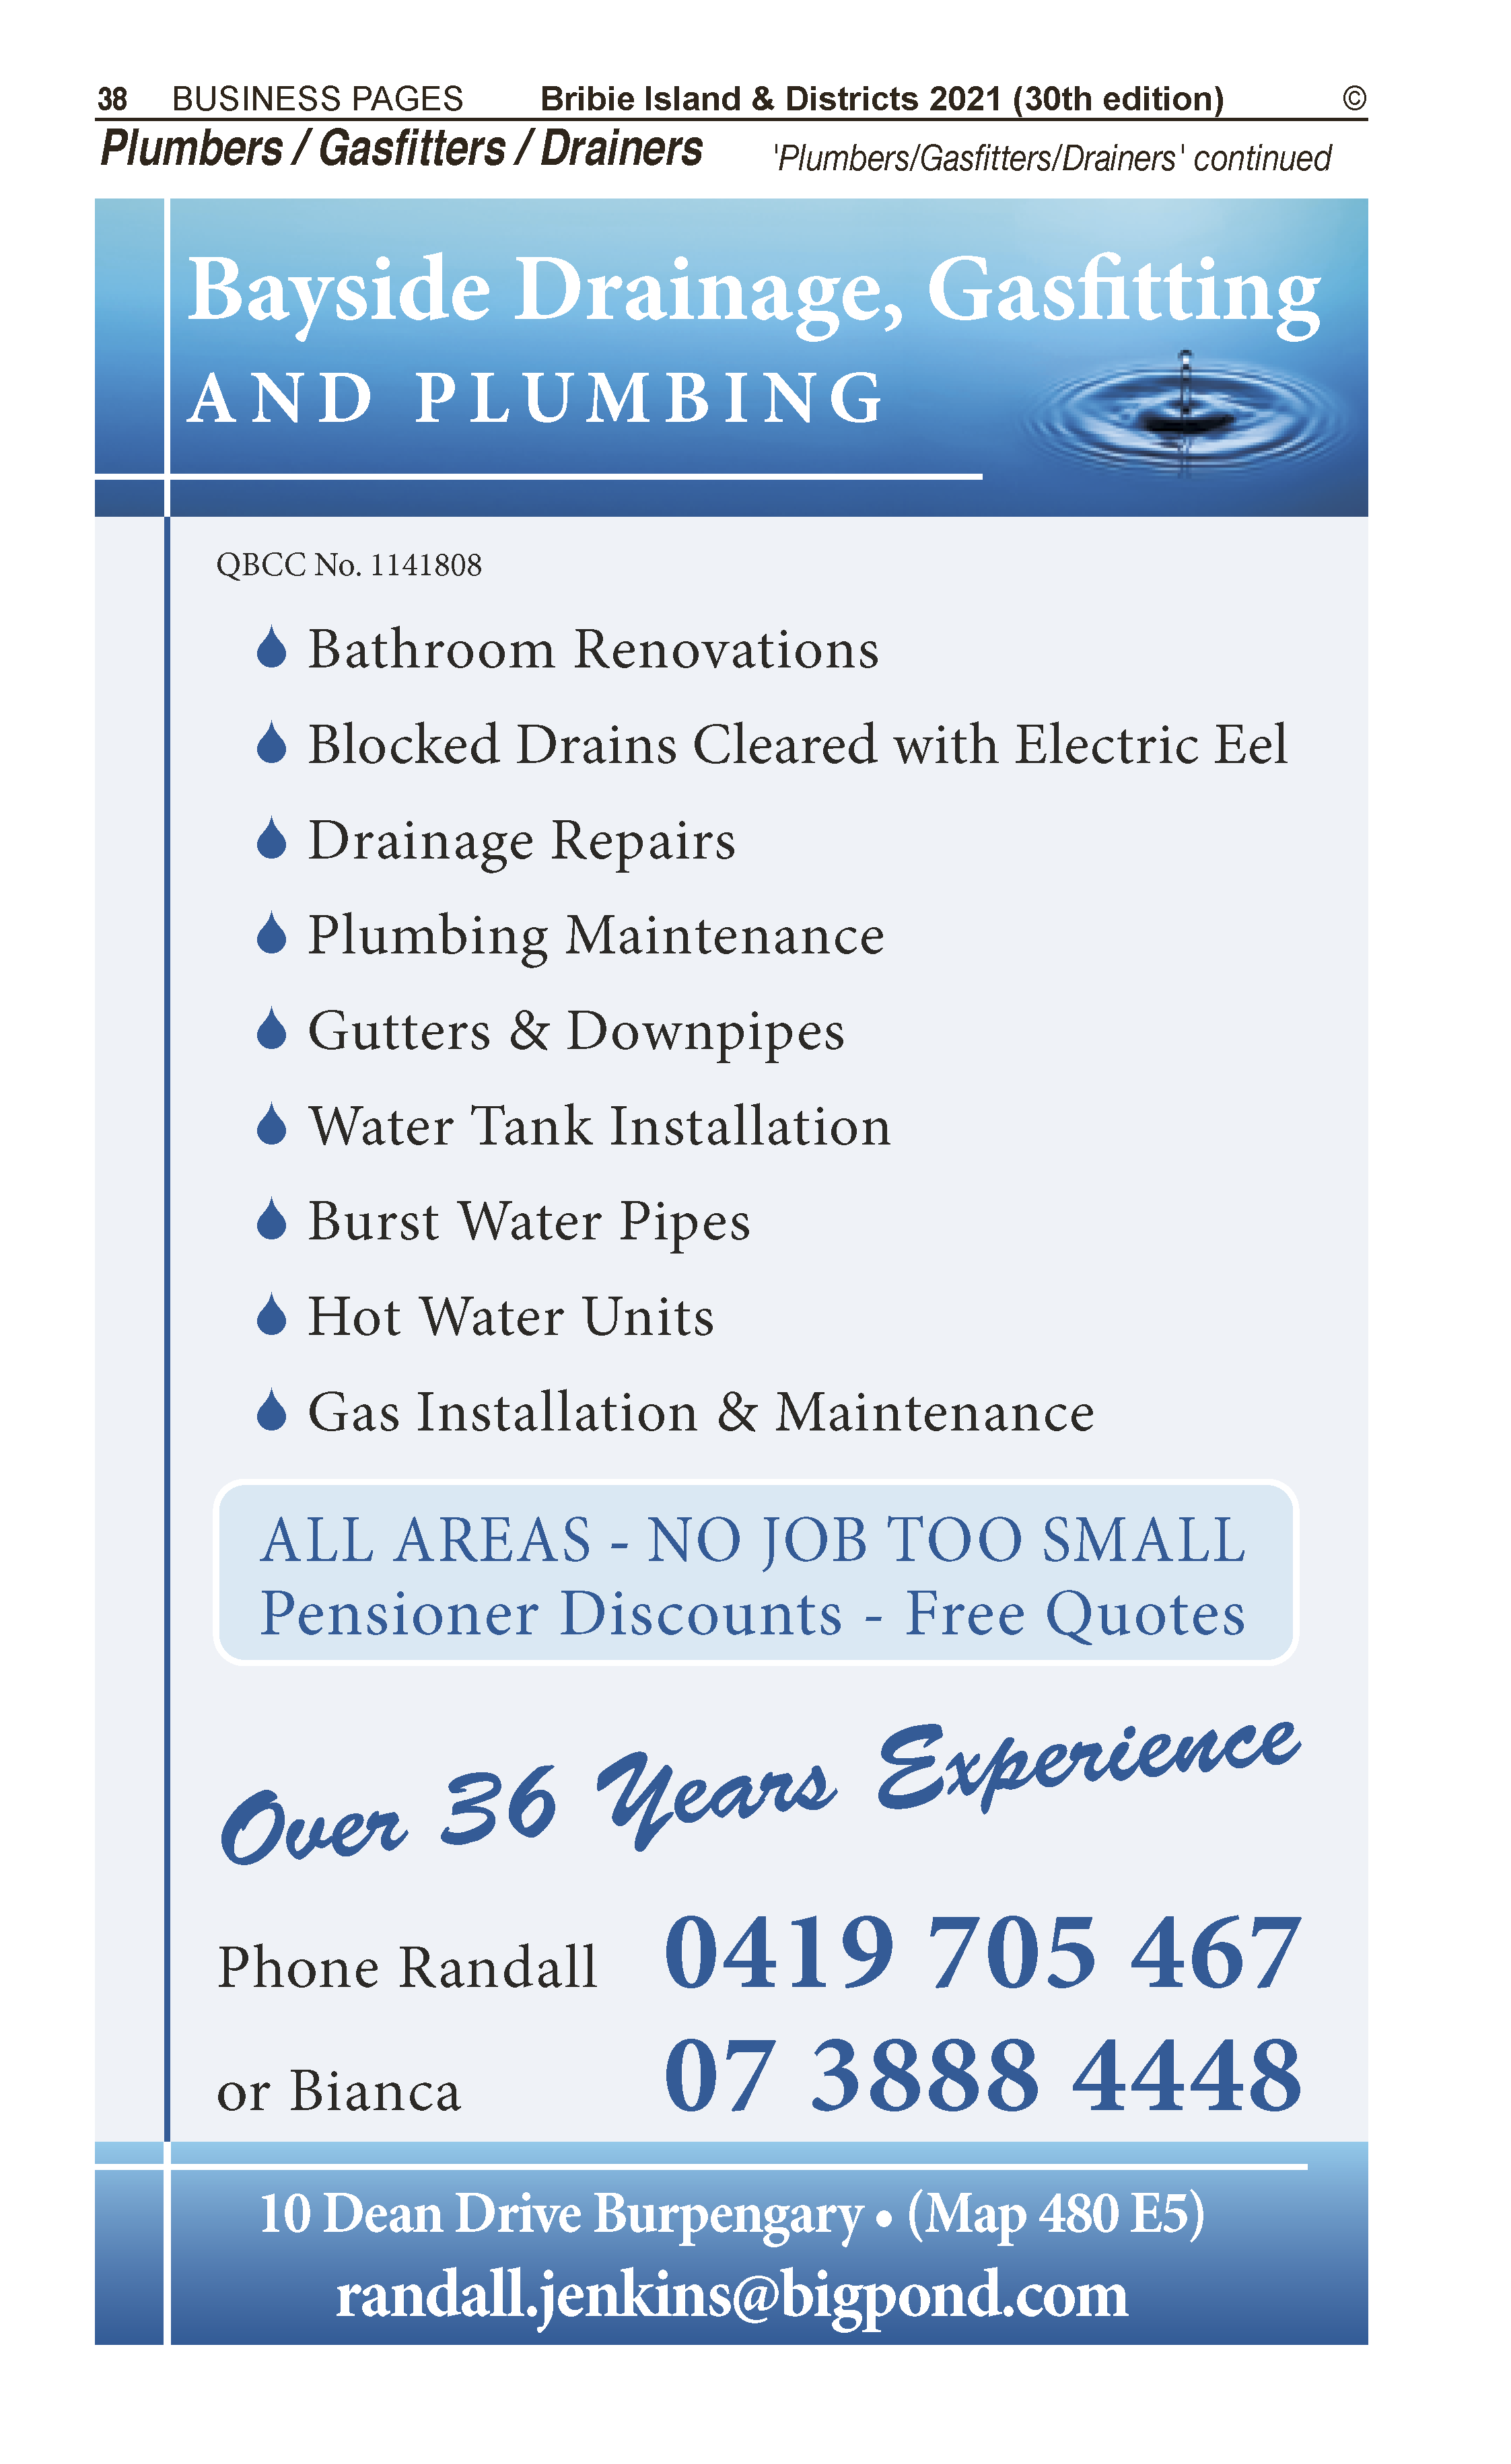 Bayside Drainage, Gasfitting & Plumbing   Gasfitters in Burpengary   PBezy Pocket Books local directories - page 38